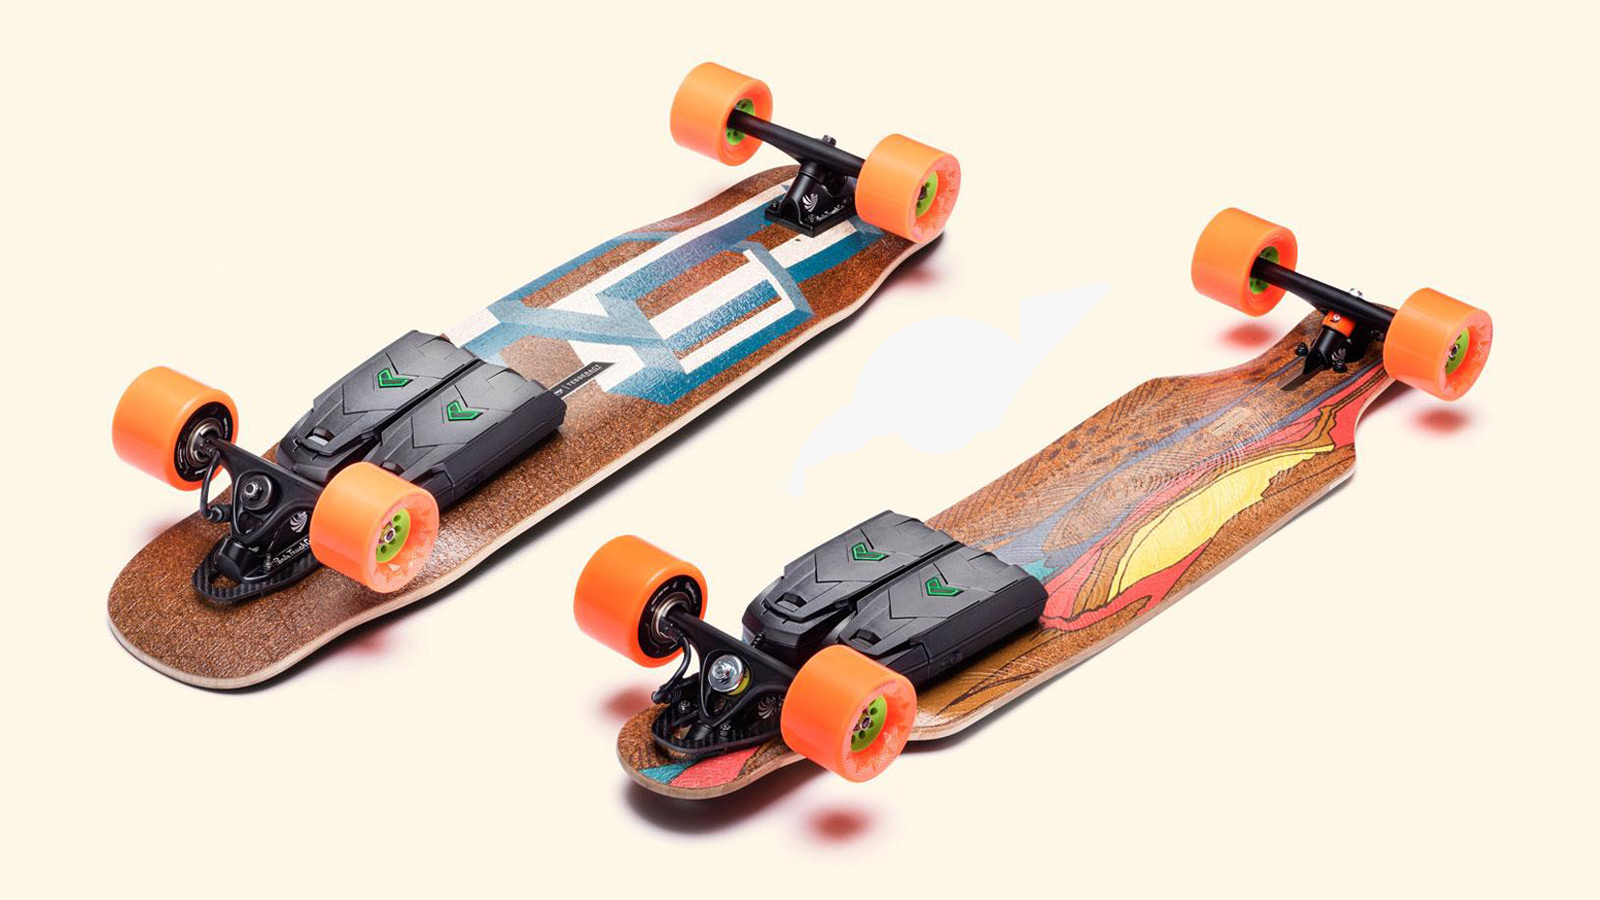 Unlimited x Loaded Cruiser Kit